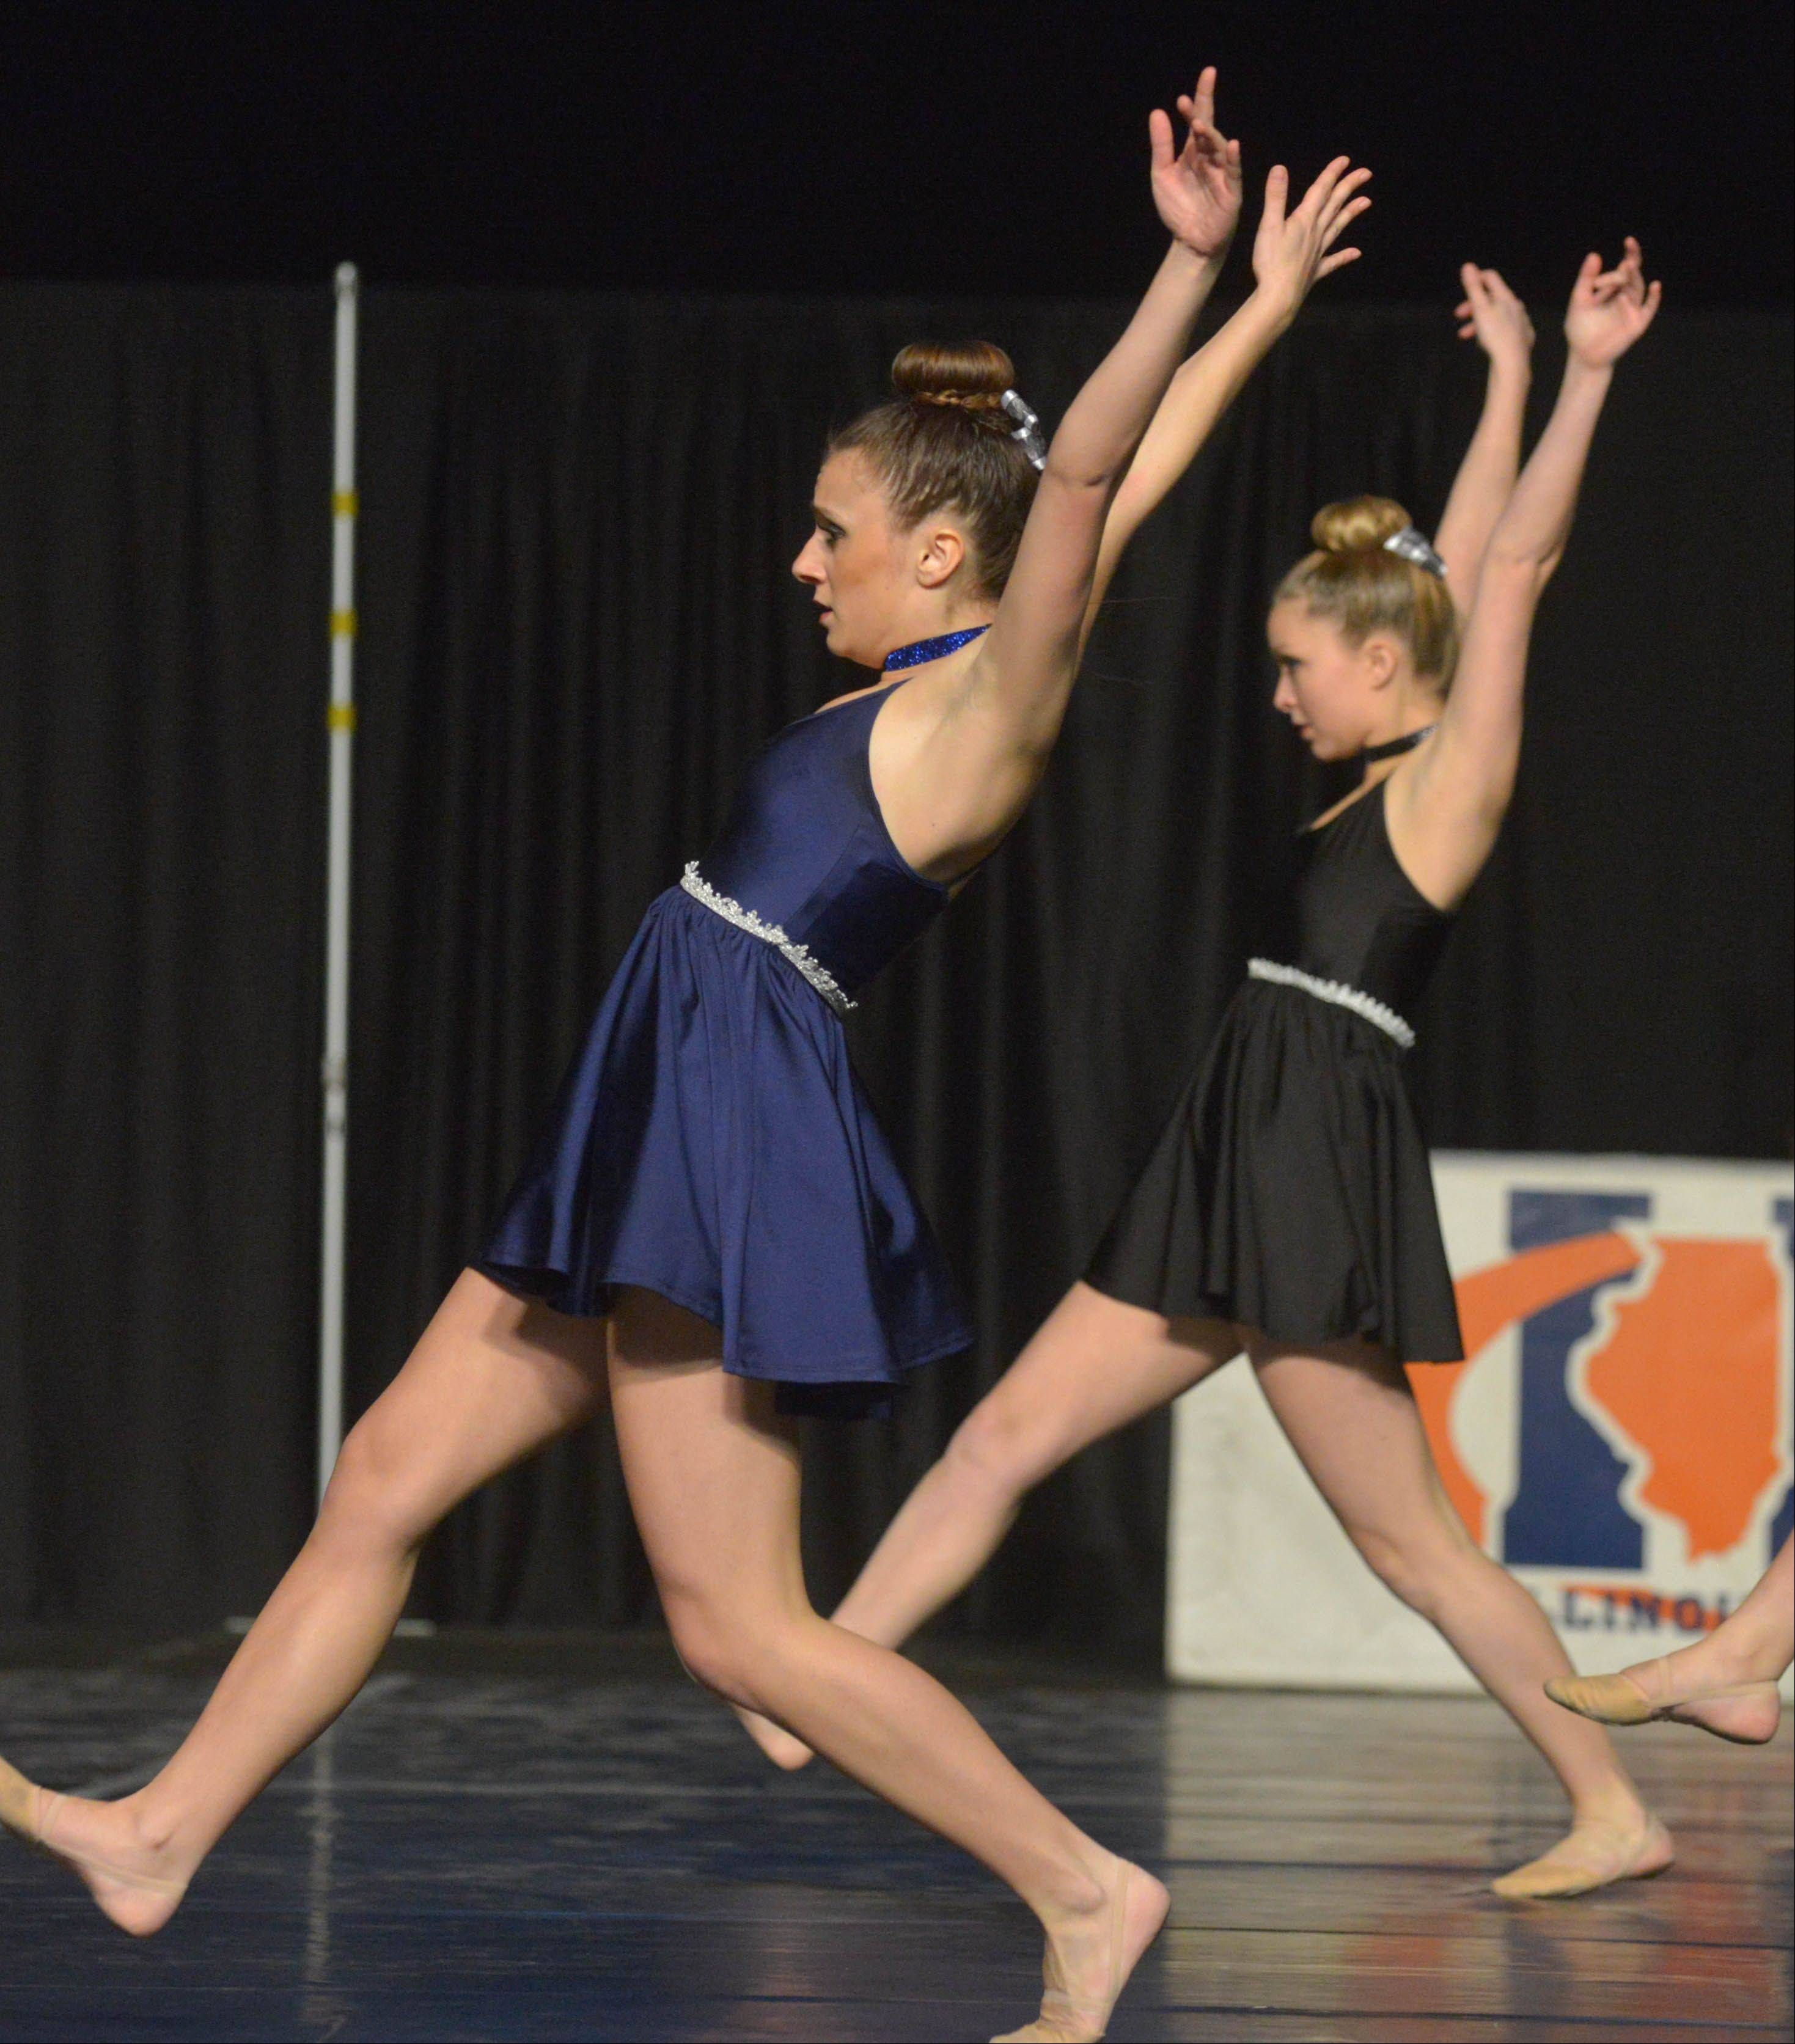 The Larkin High School dance team took part in the Competitive Dance preliminary round Friday at U.S. Cellular Coliseum in Bloomington.